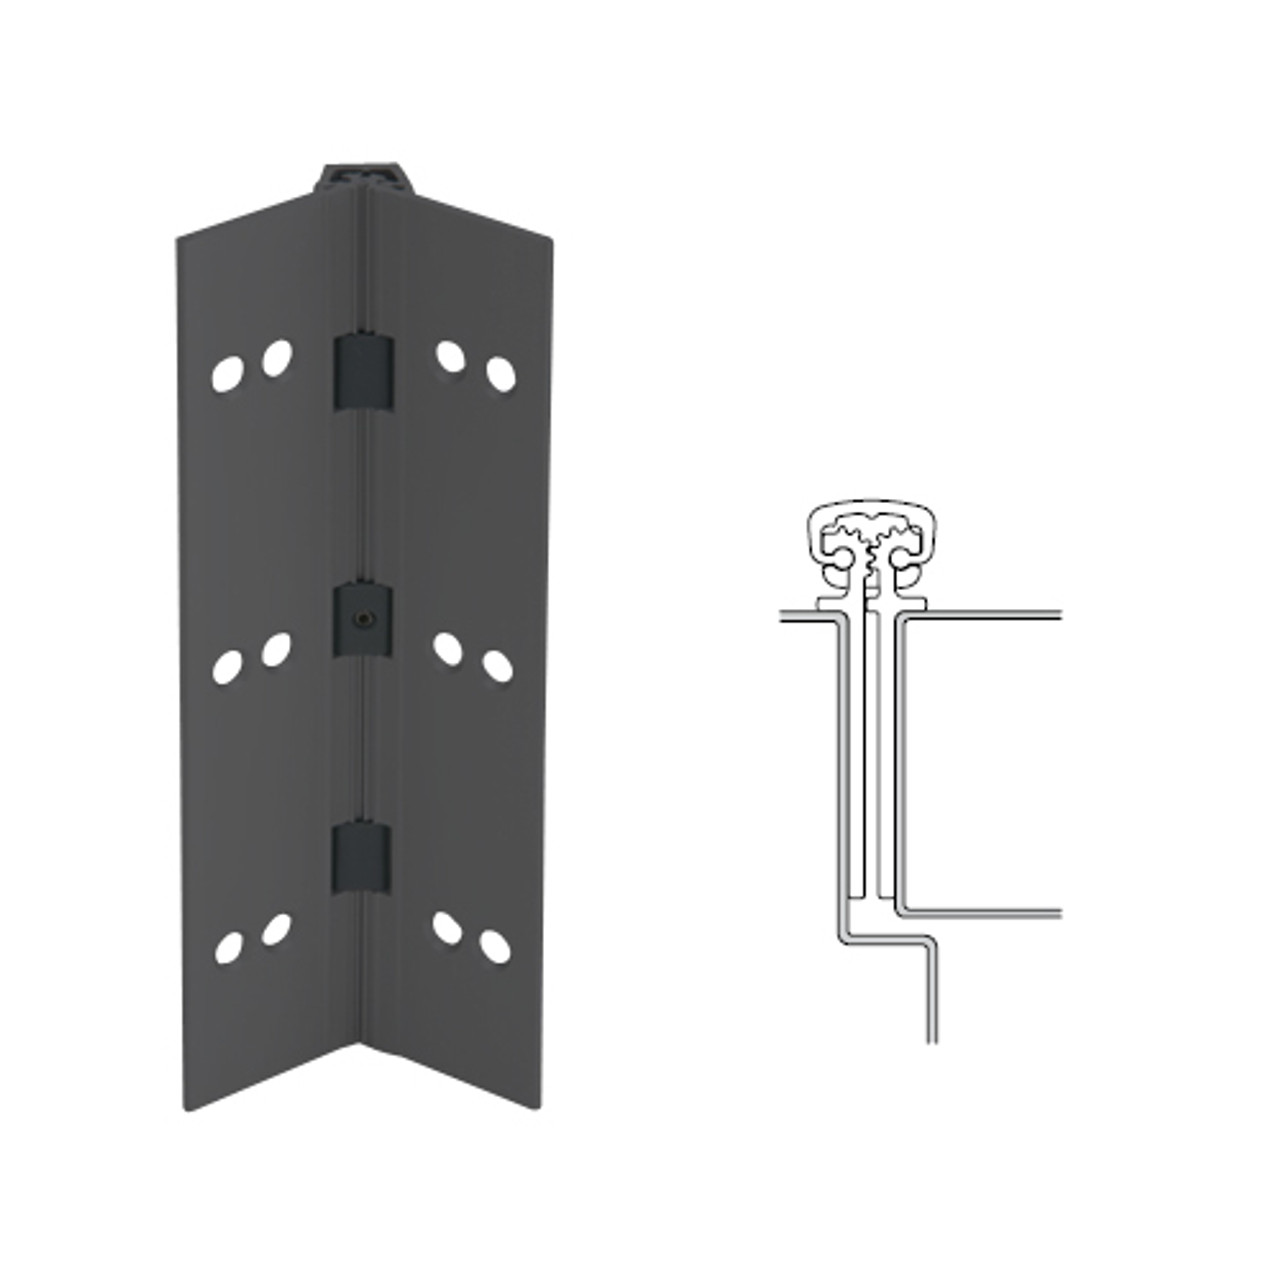 027XY-315AN-85-TFWD IVES Full Mortise Continuous Geared Hinges with Thread Forming Screws in Anodized Black